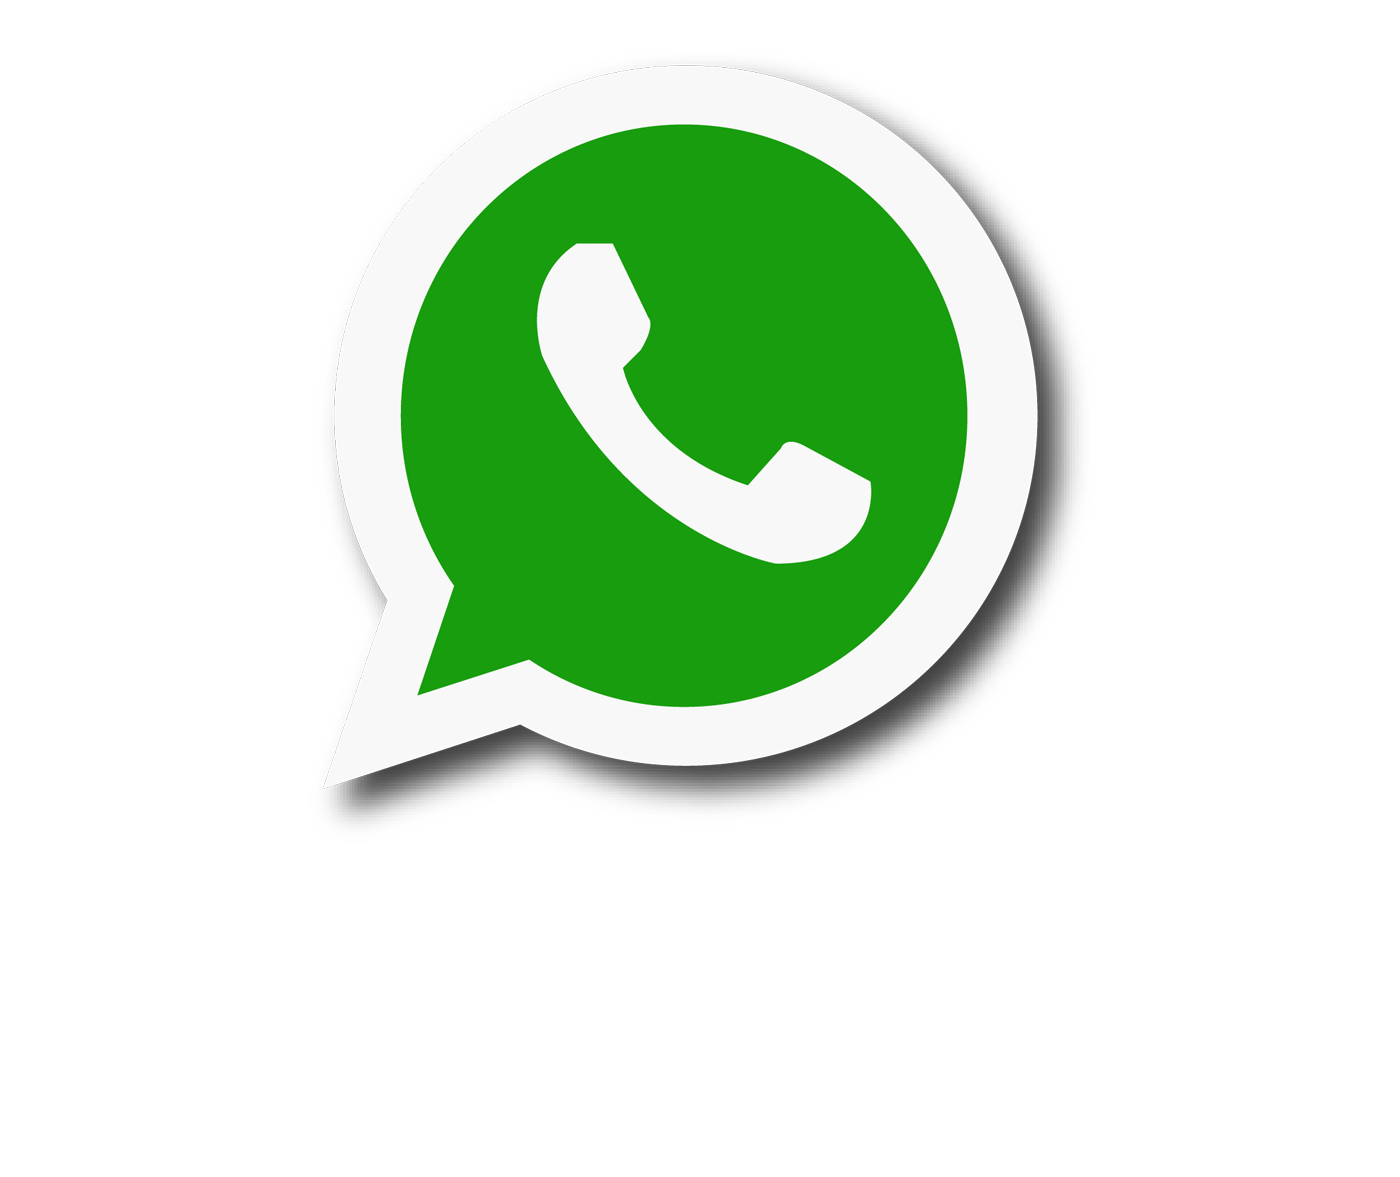 Whatsapp PNG - 19403